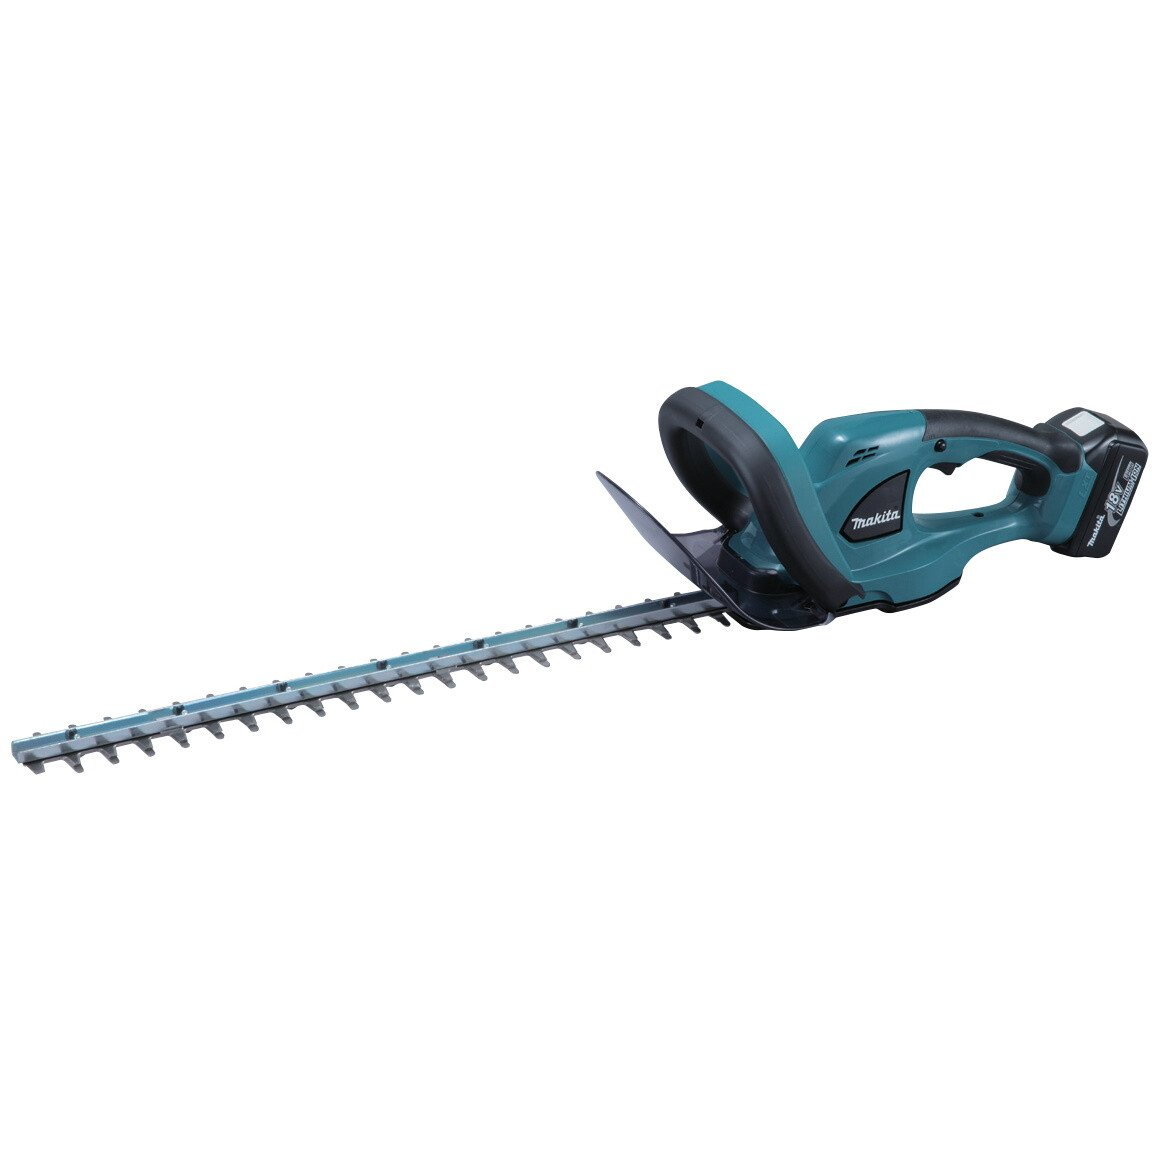 Makita DUH523RT 18V 52cm Hedge Trimmer with 1 x 5.0Ah Battery